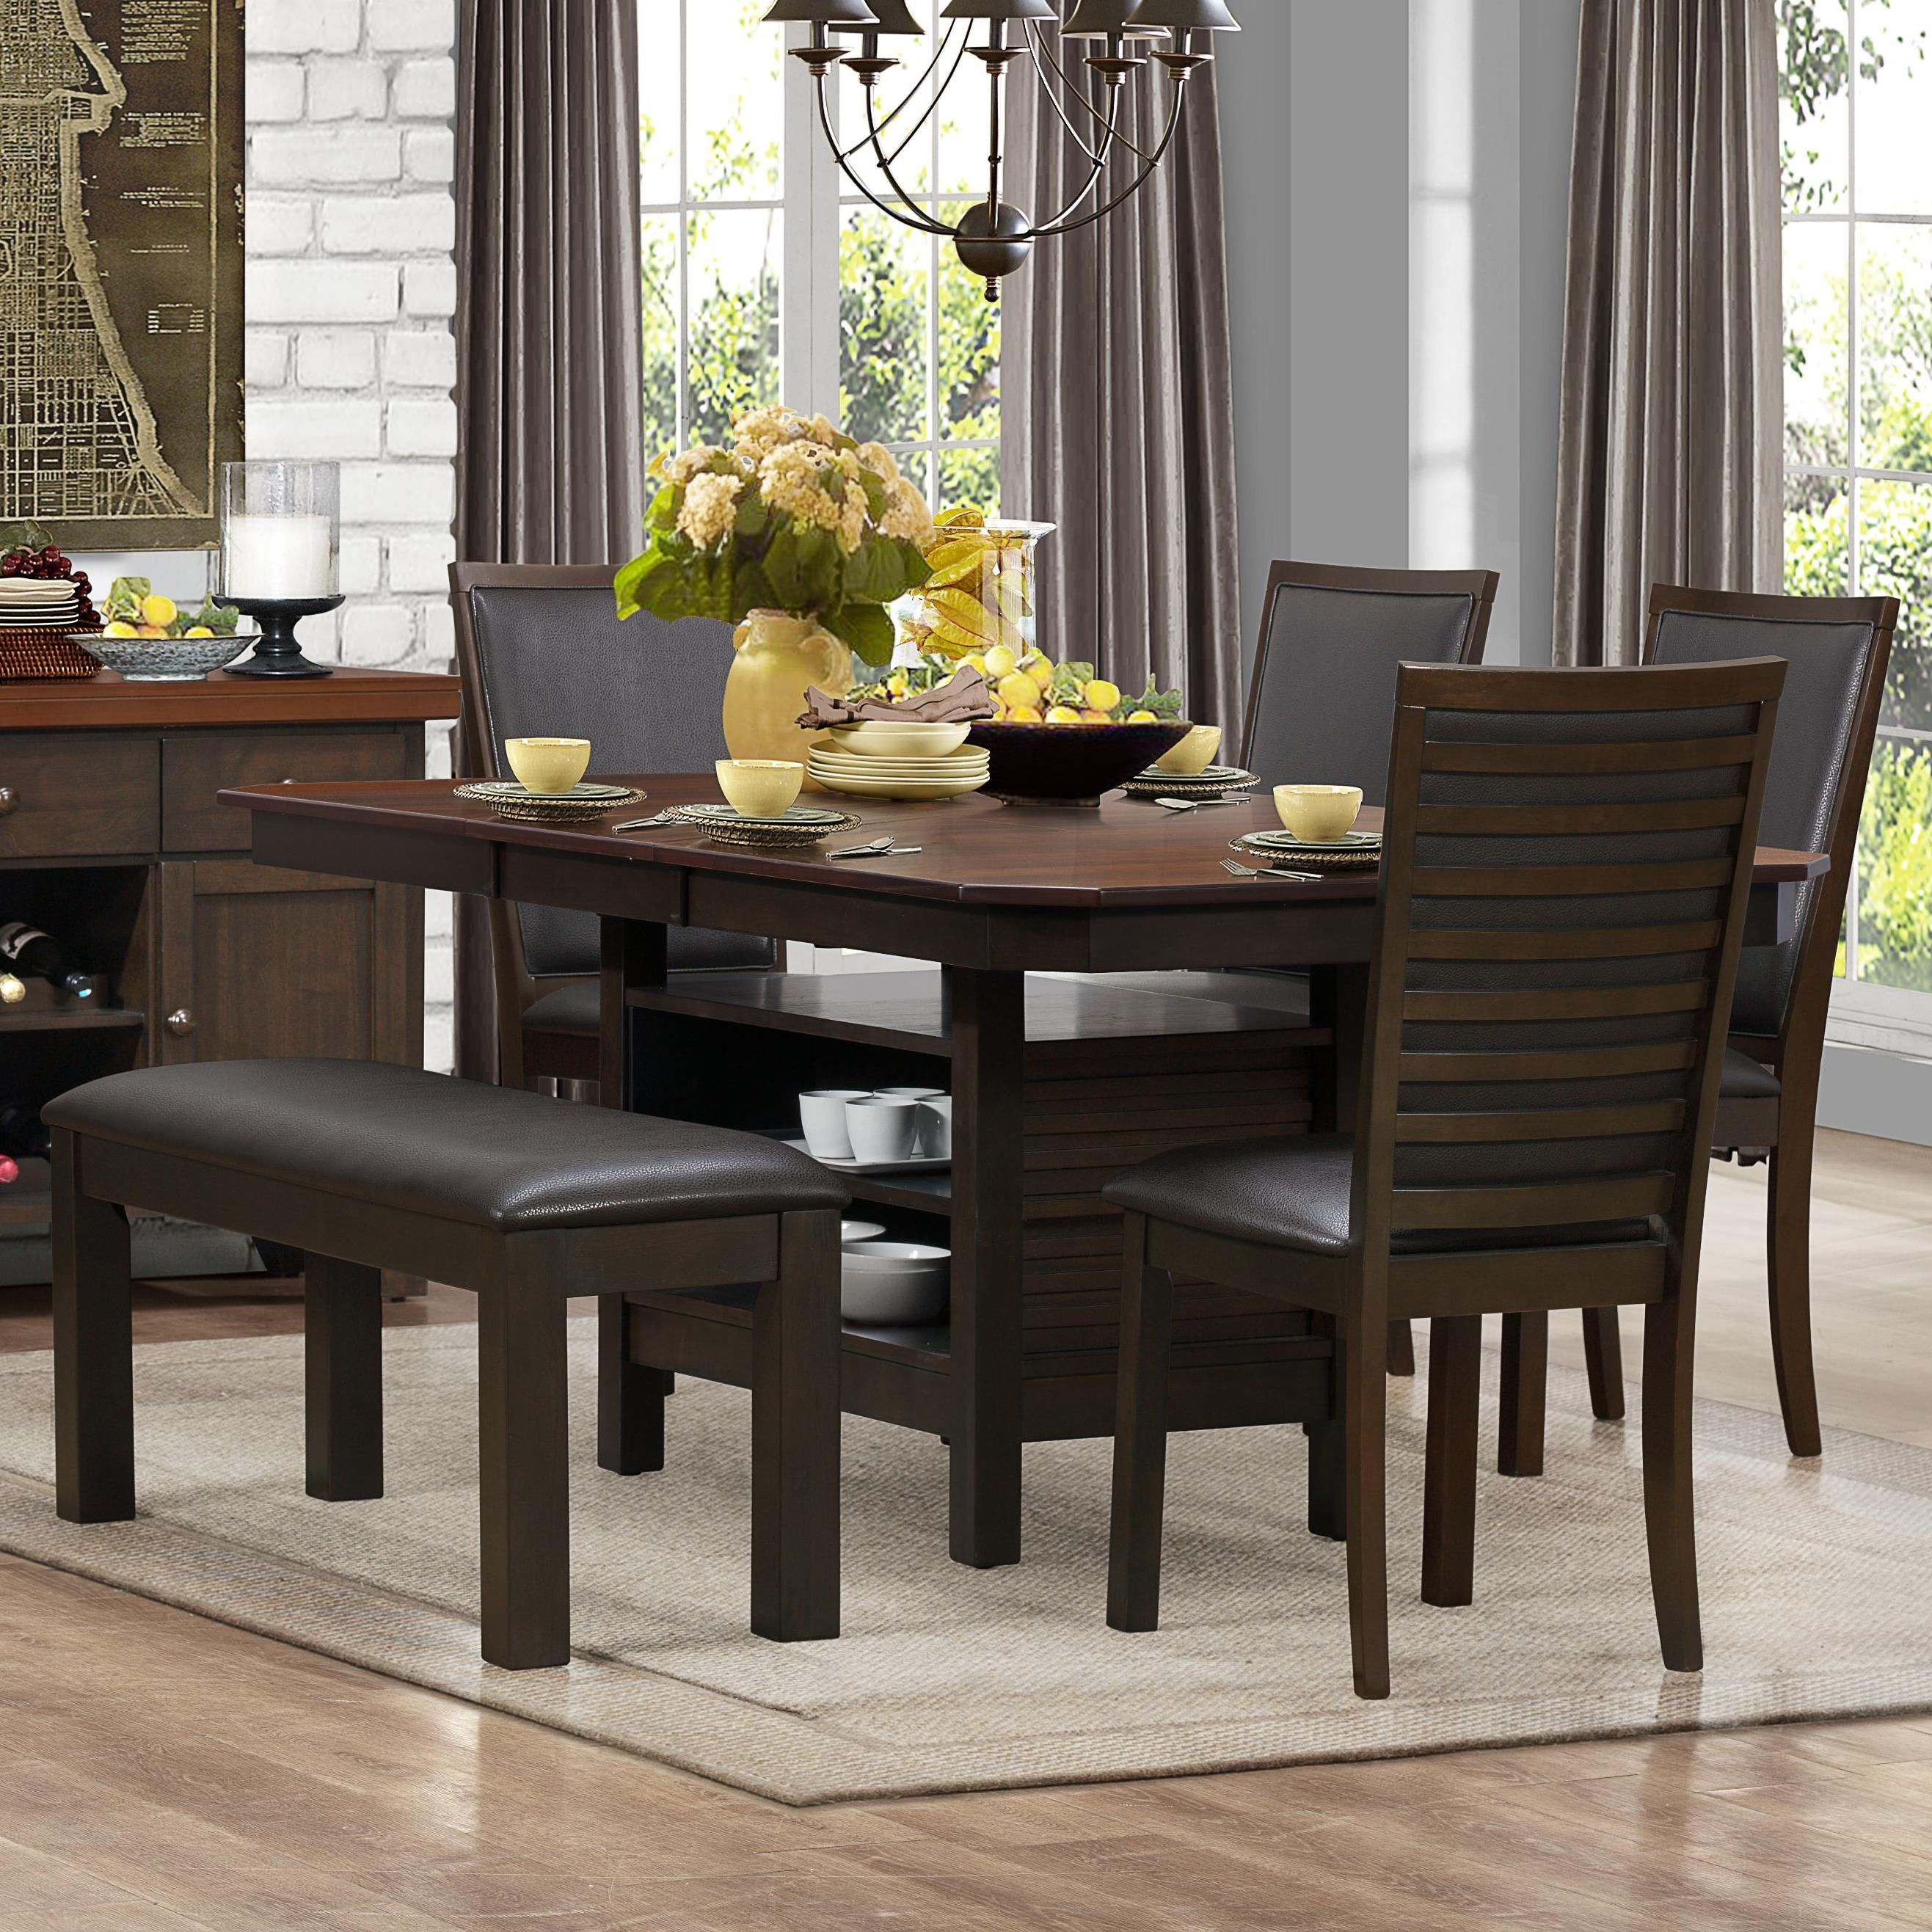 Corliss Dining Table Dining Table With Storage Pedestal Dining